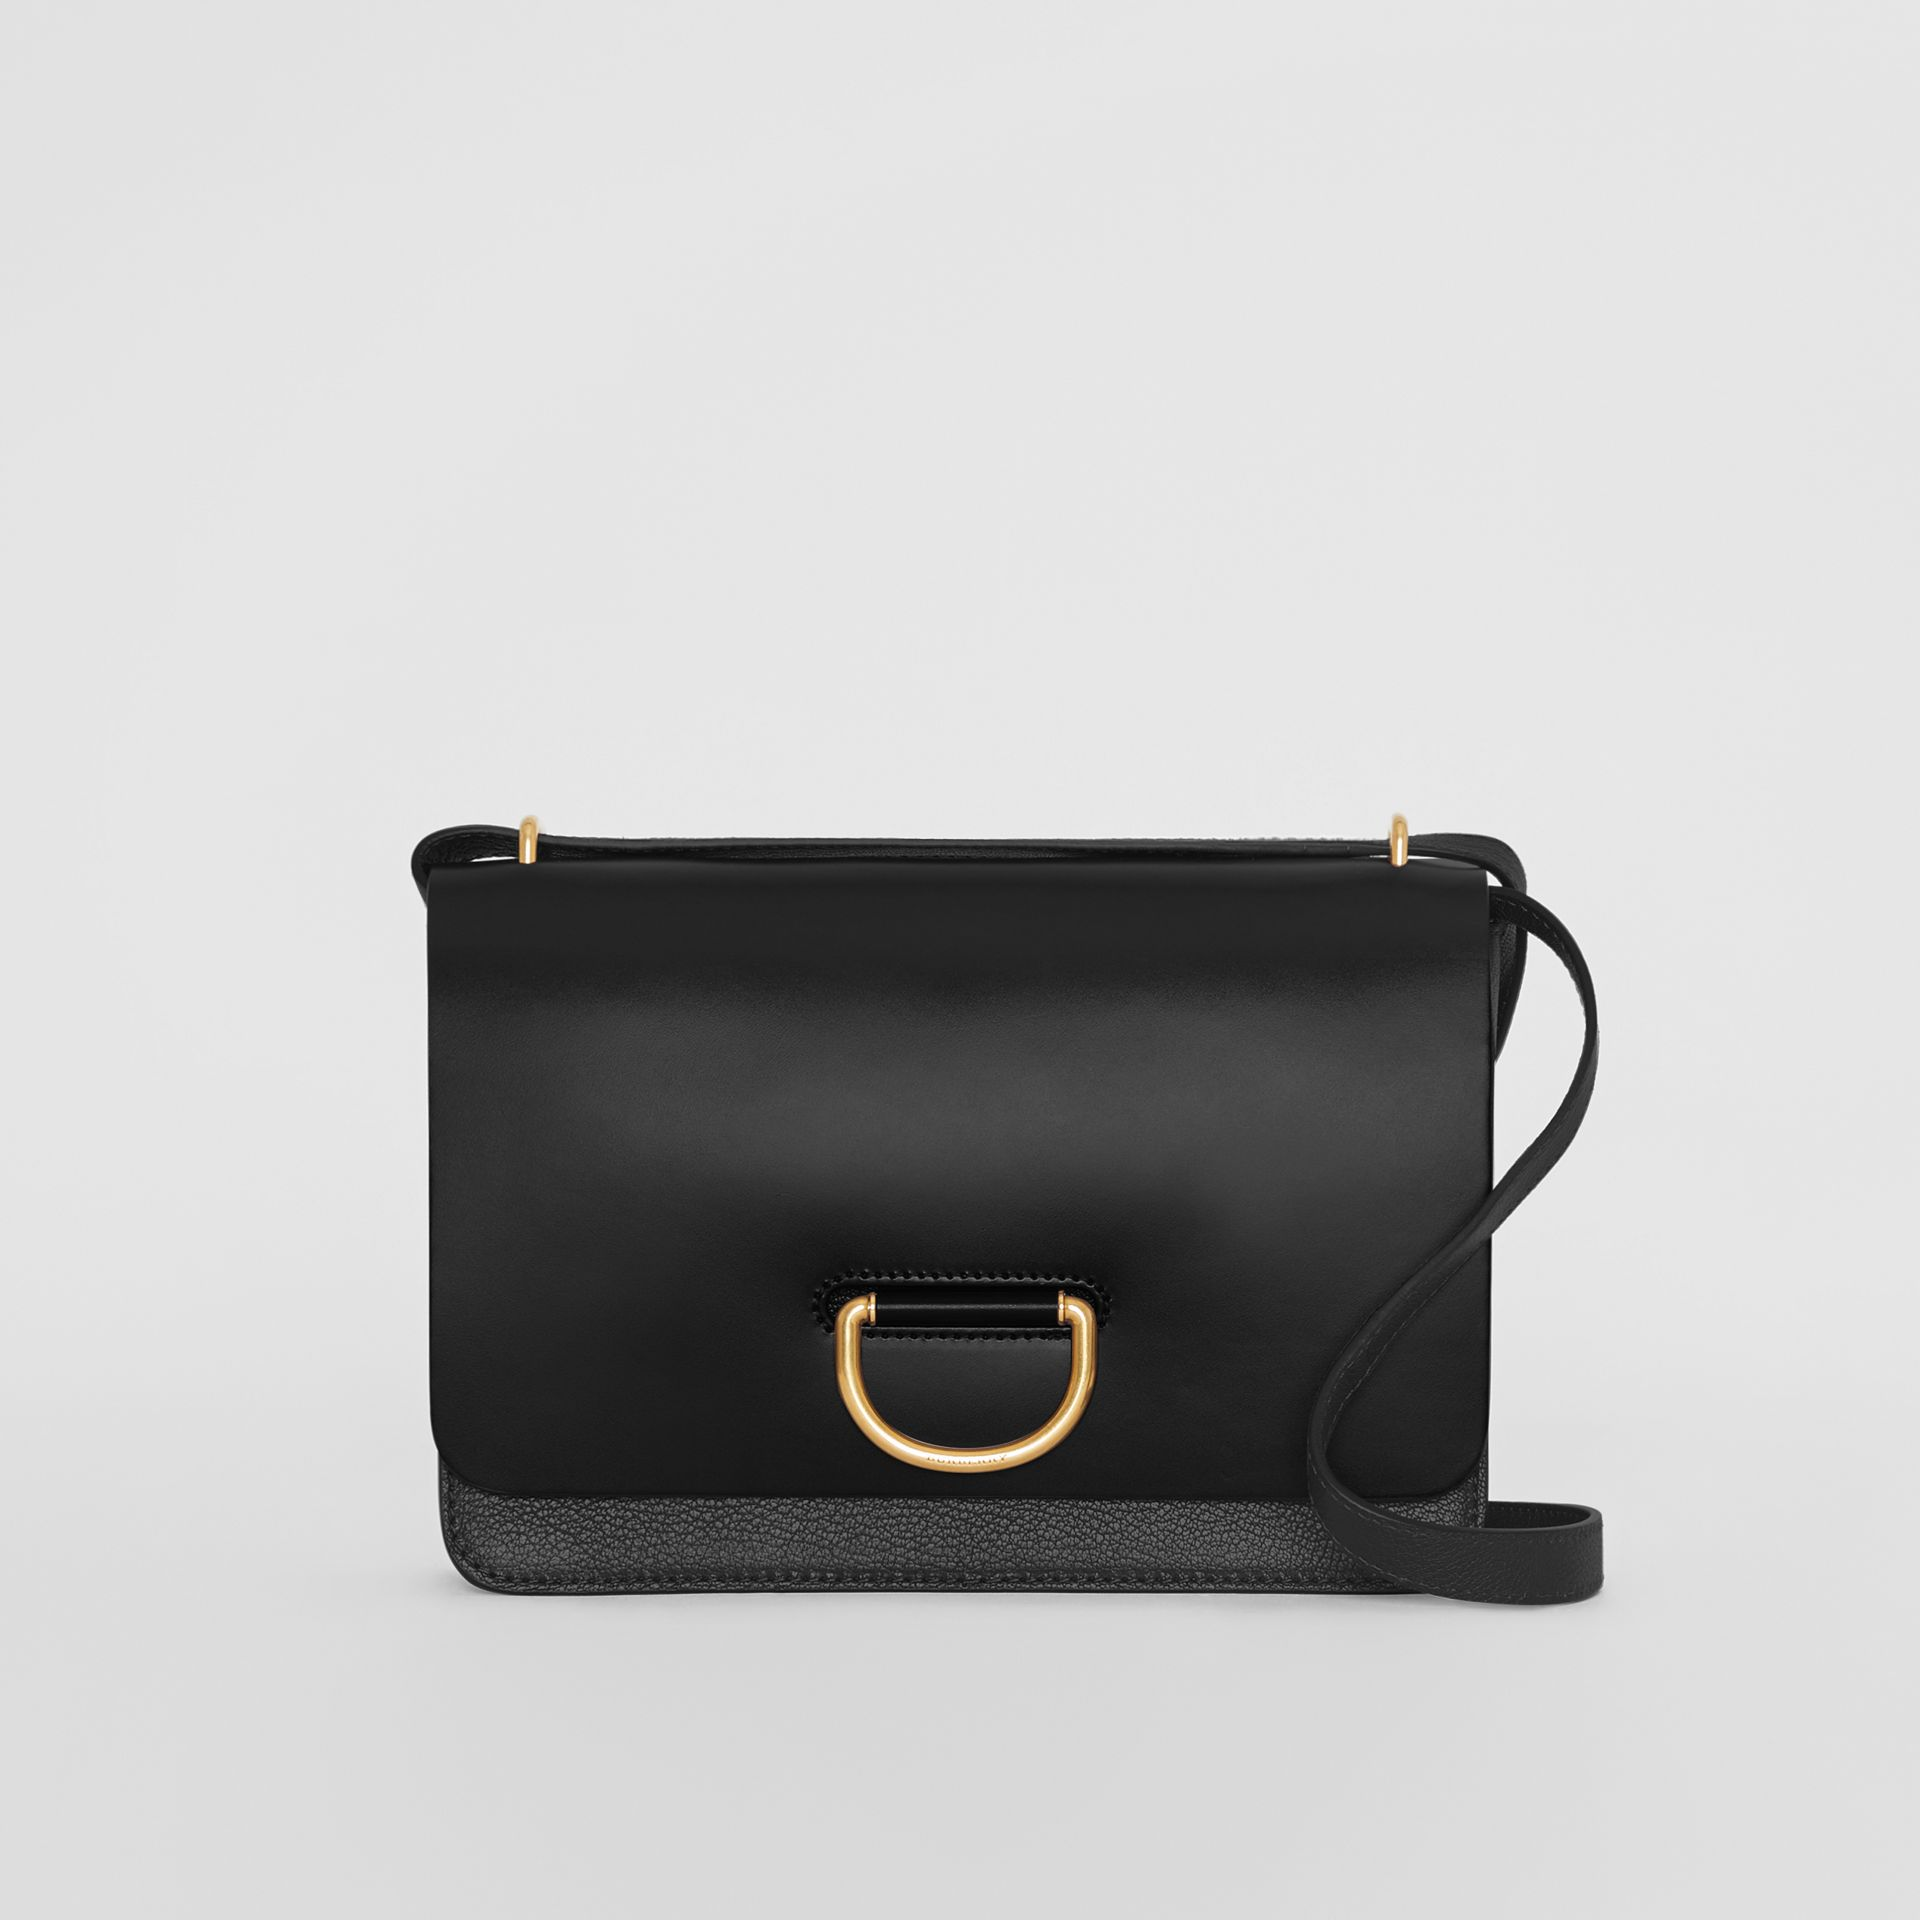 Sac The D-ring moyen en cuir (Noir) - Femme | Burberry - photo de la galerie 0